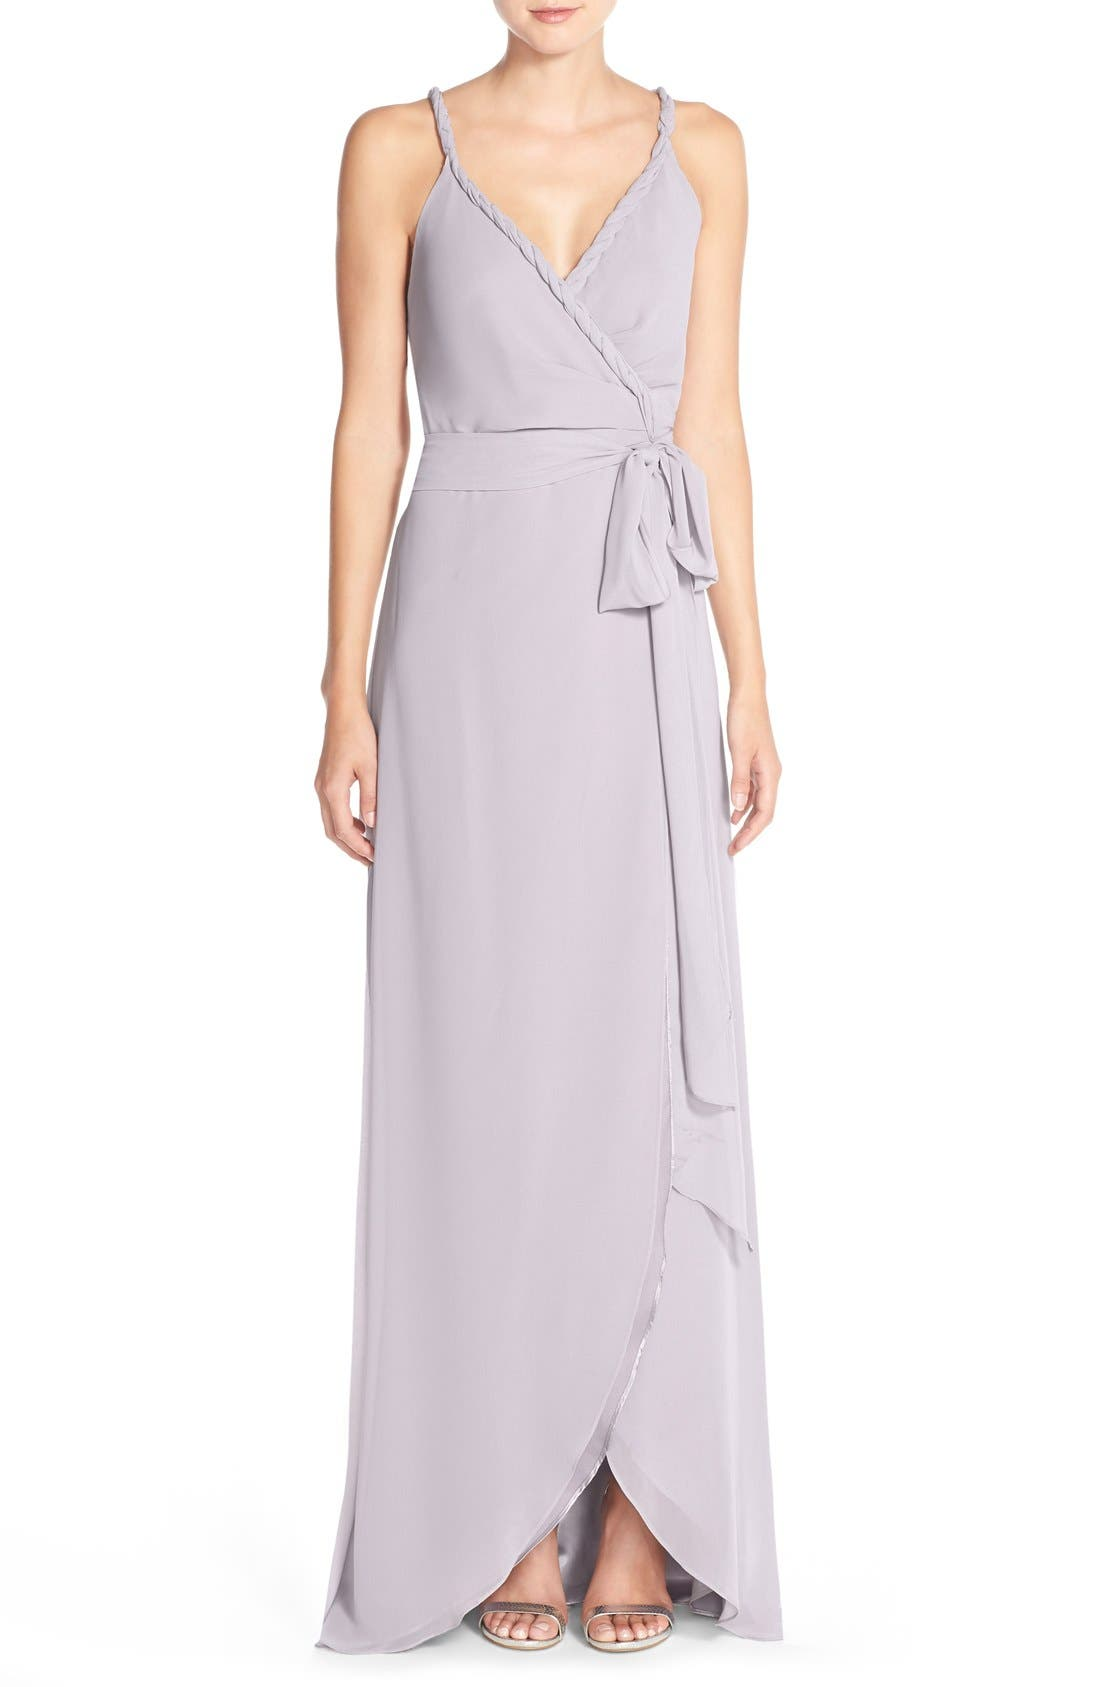 Ceremony by Joanna August 'Parker' Twist Strap Chiffon Wrap Gown